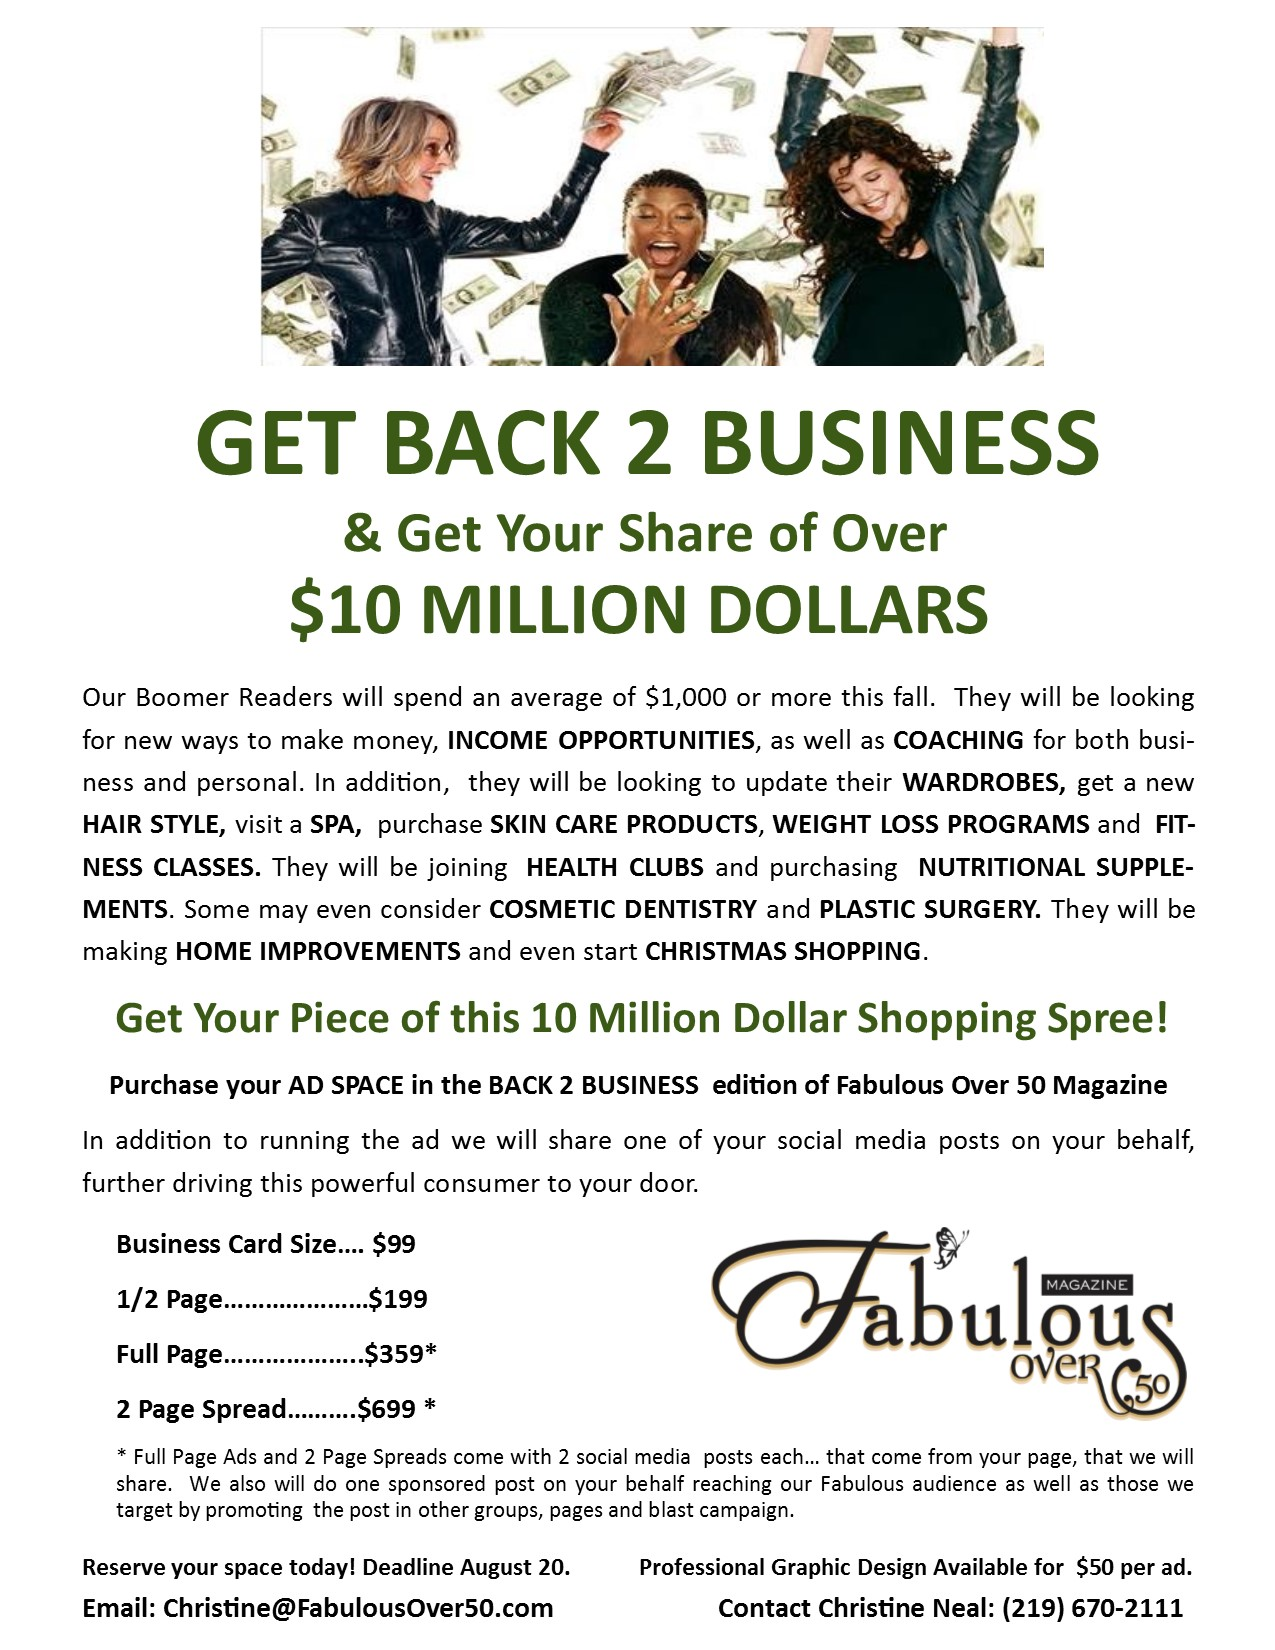 Fabulous Over 50 Advertising Information Flyer Fall 2017 image